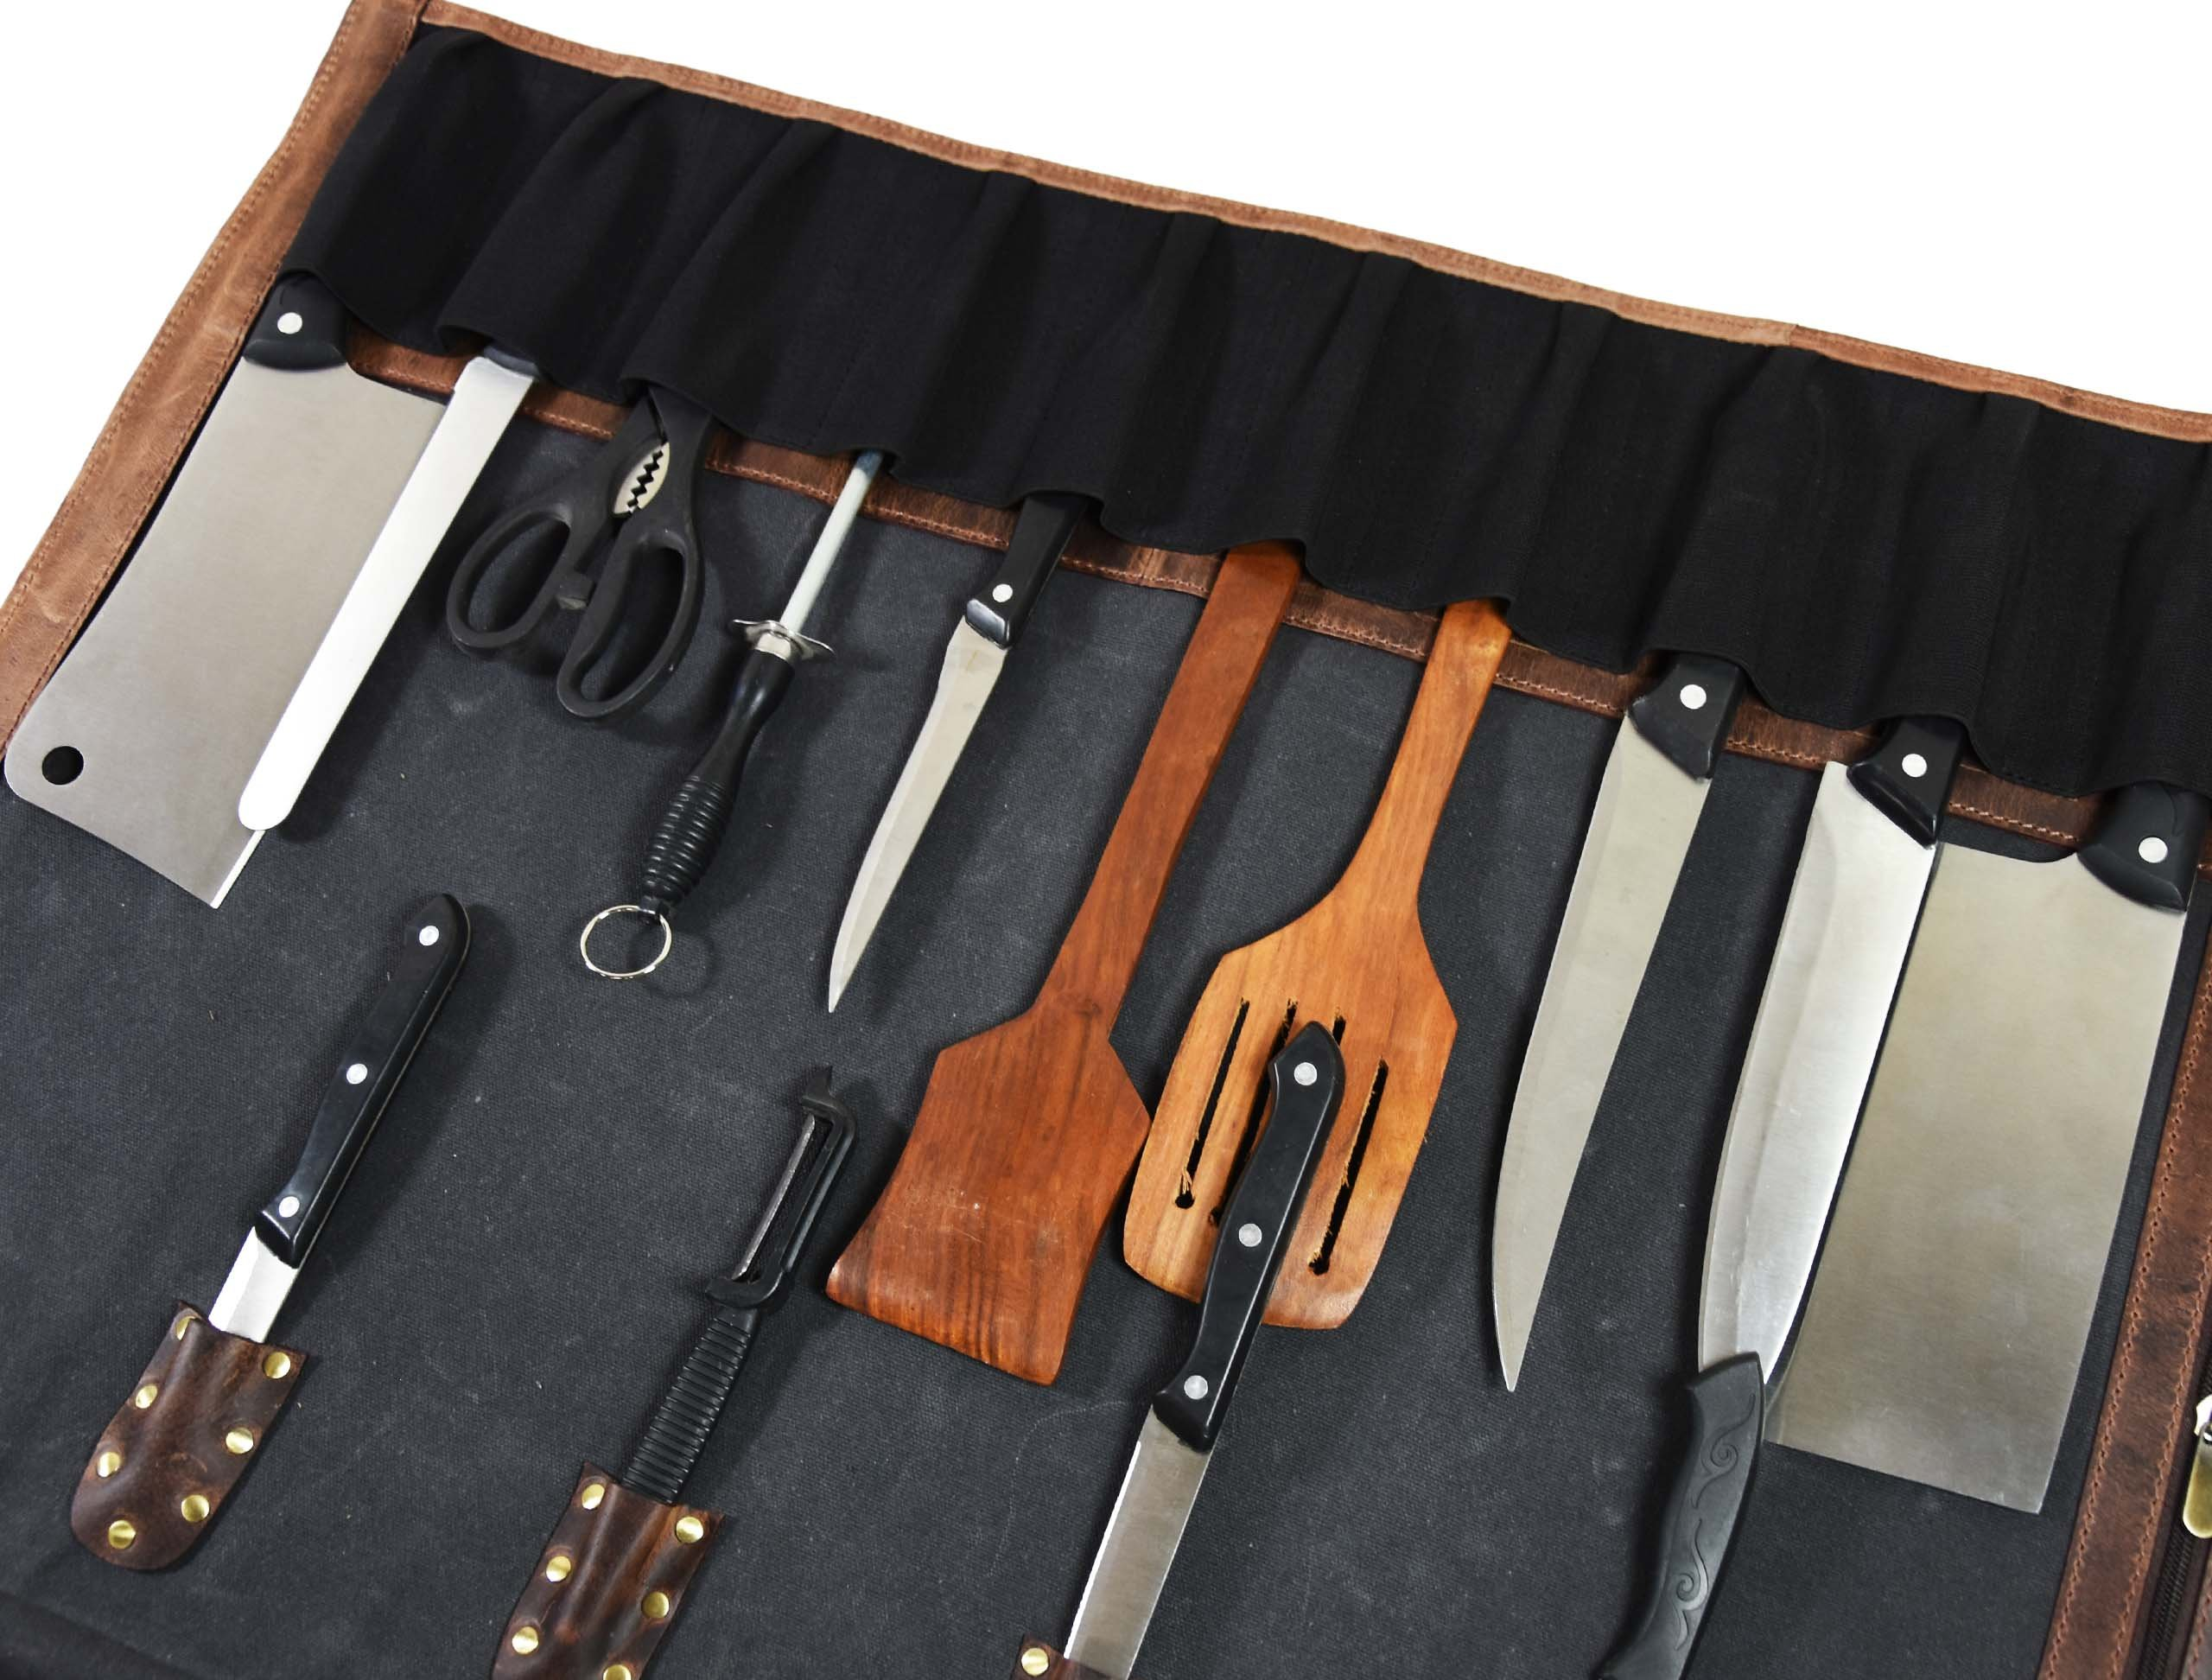 Leather Knife Roll Chef Roll Storage Bag Aaron Leather (Fossil Grey) by Aaron Leather (Image #4)